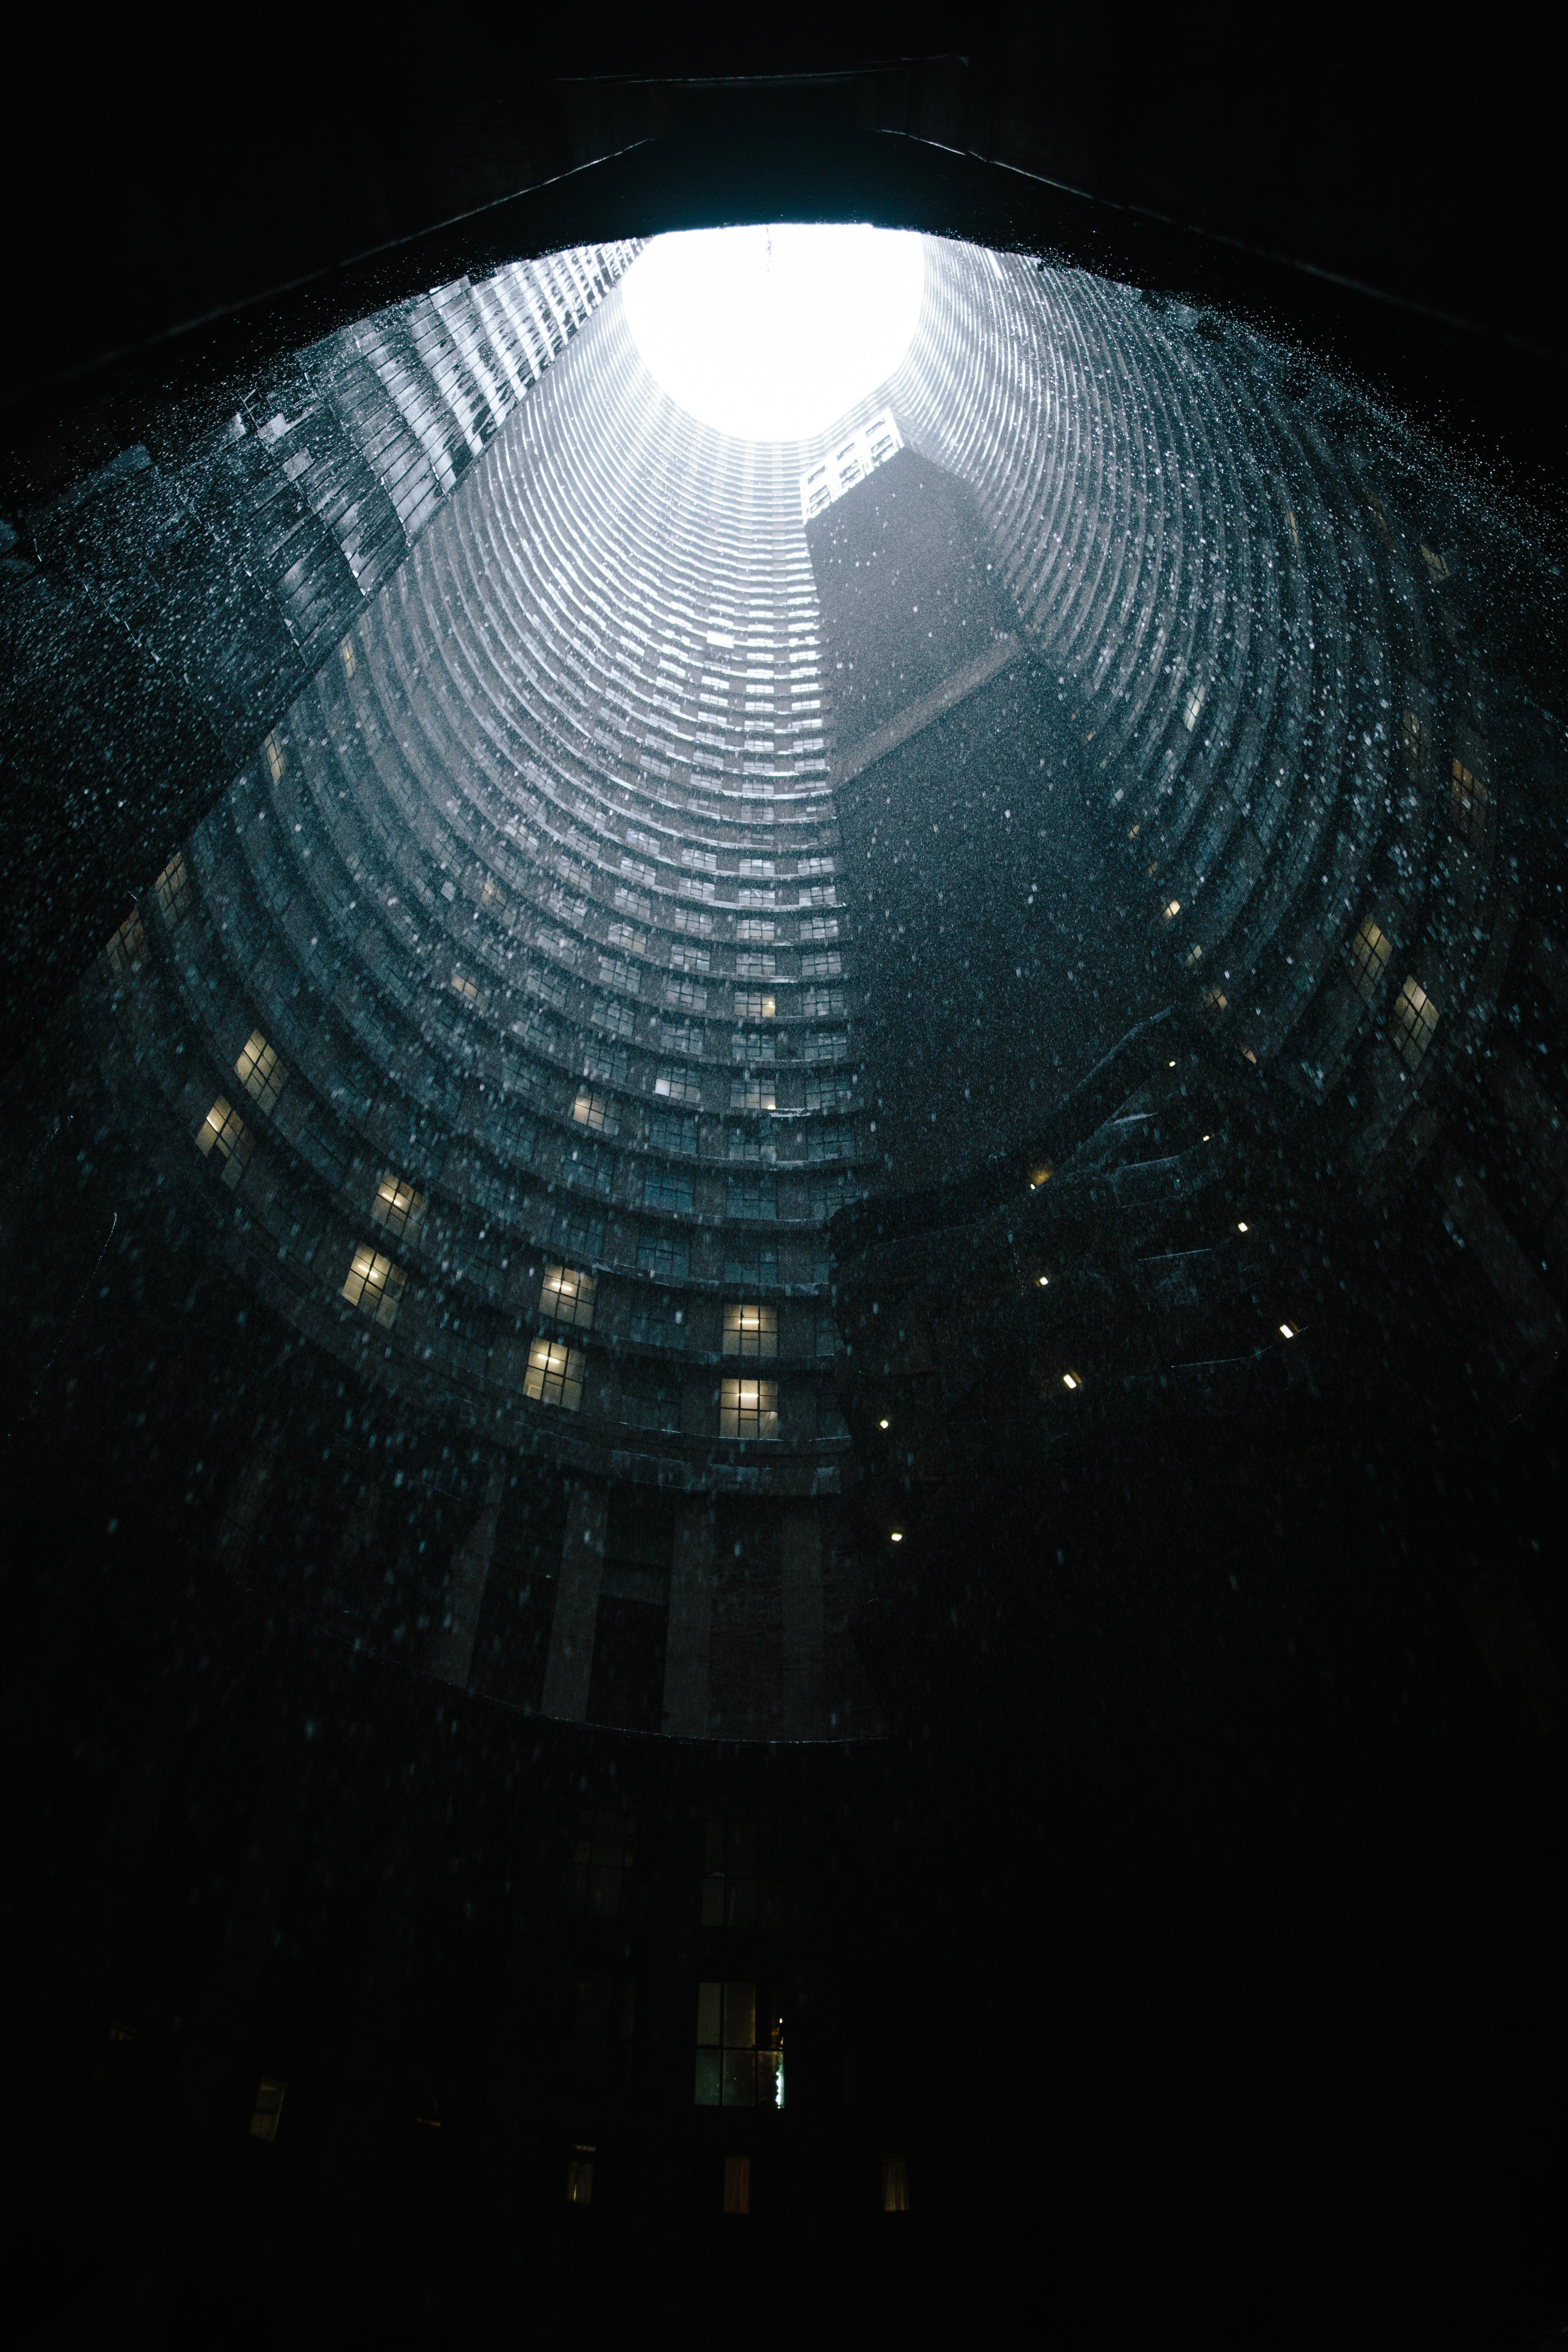 A dramatic shot of the core of the Ponte City Tower in Johannesburg under heavy rain